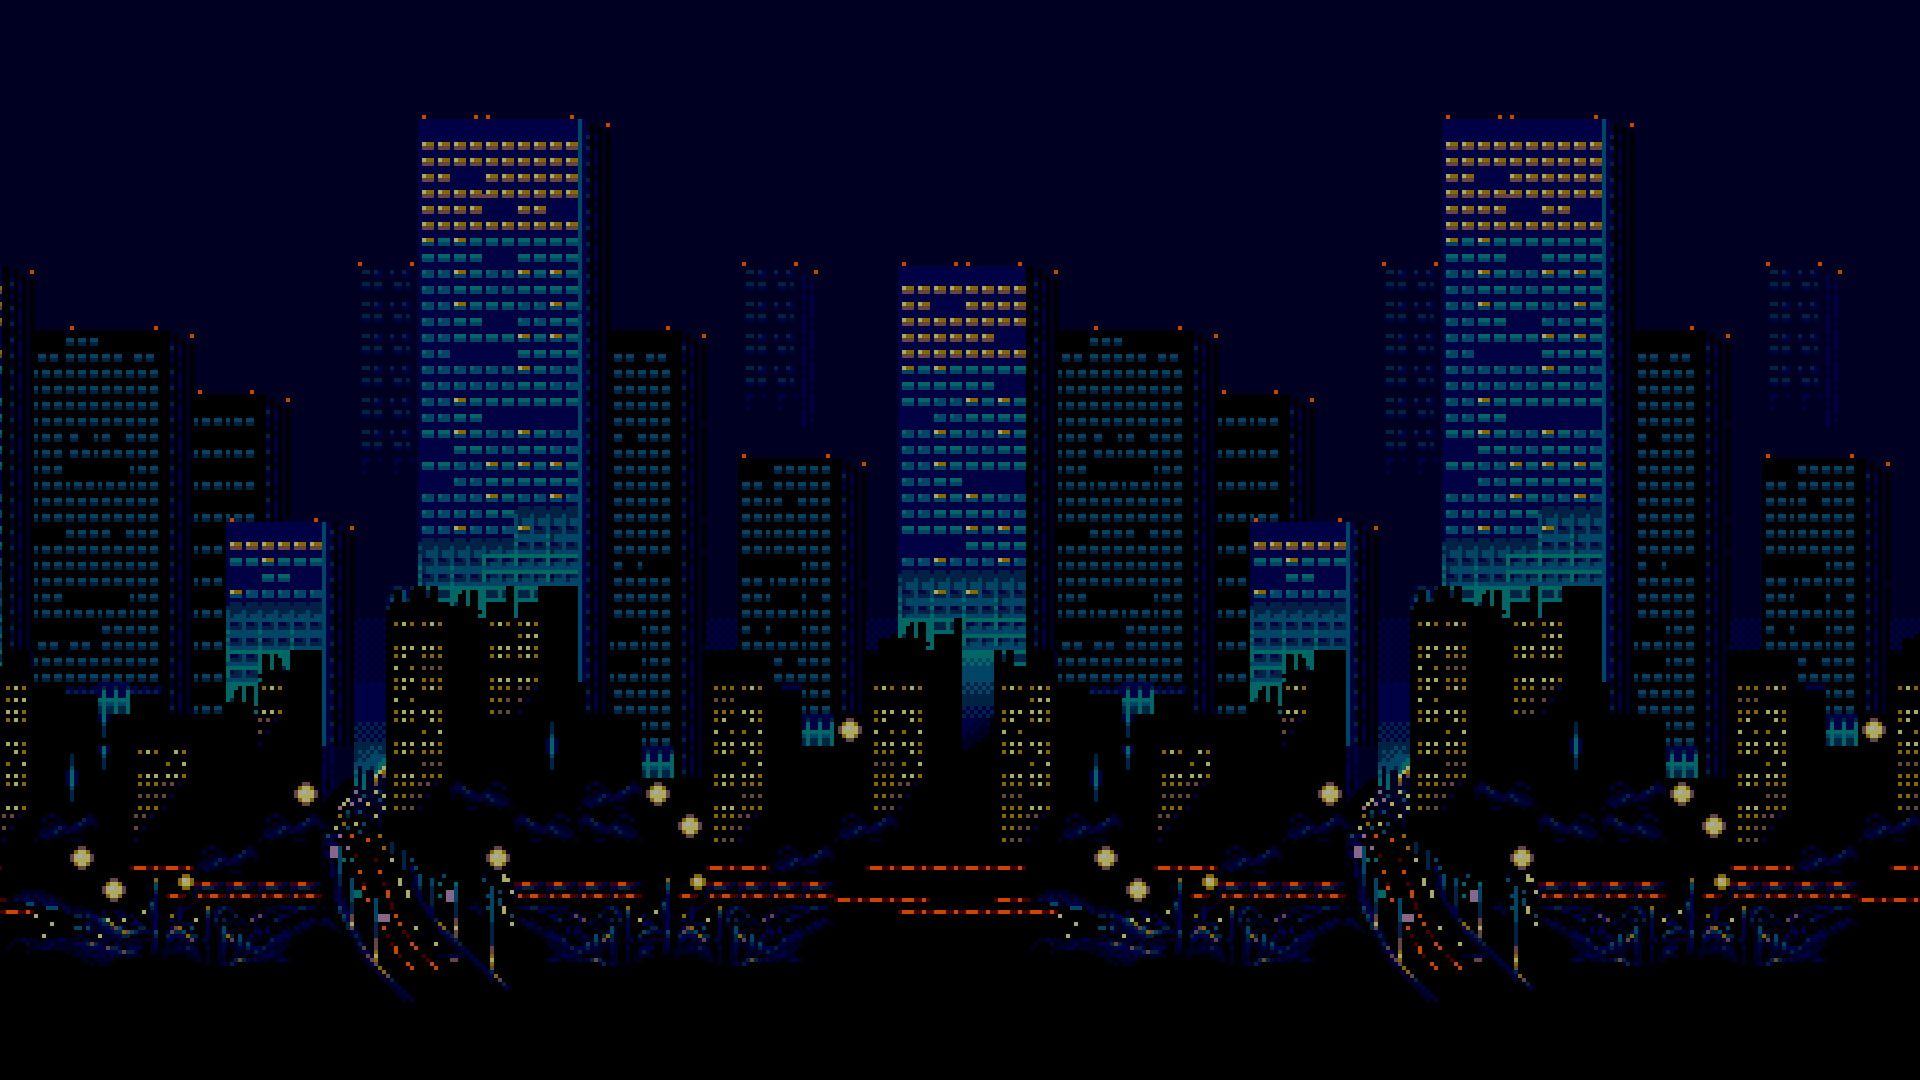 16 Bit Streets Of Rage City Night Skyline Sega Pixel Art Urban 1080p Wallpaper Hdwallpaper Desktop Pixel Art Digital Art Fantasy Pixel